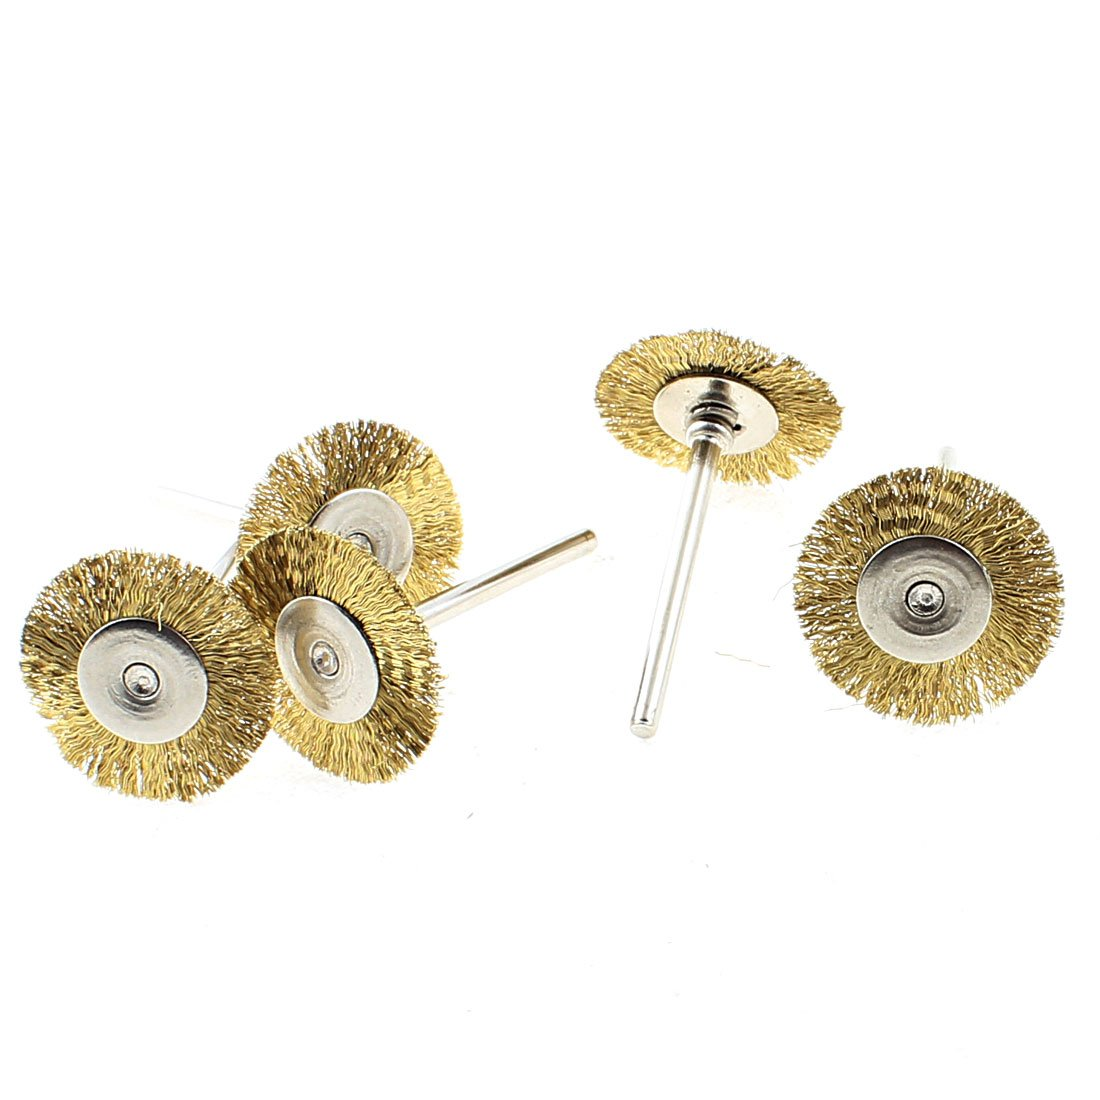 uxcell 25mm Copper Pad Metal Straight Shank Polishing Buffing Wheel Tool 5pcs